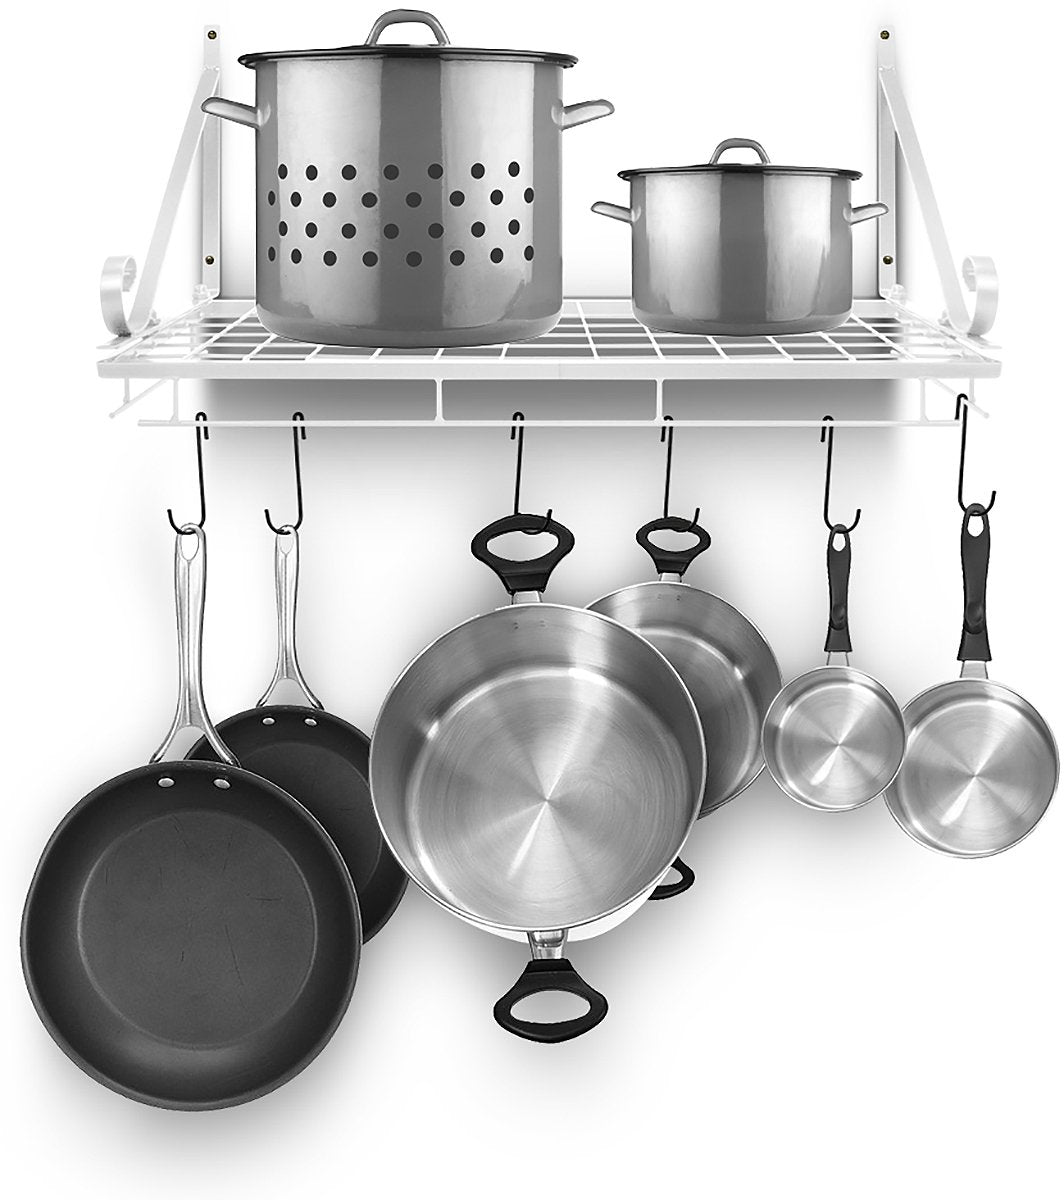 Sorbus Pots and Pan Rack — Decorative Wall Mounted Storage Hanging Rack — Multipurpose Wrought-Iron shelf Organizer for Kitchen Cookware, Utensils, Pans, Books, Bathroom (Wall Rack - White)